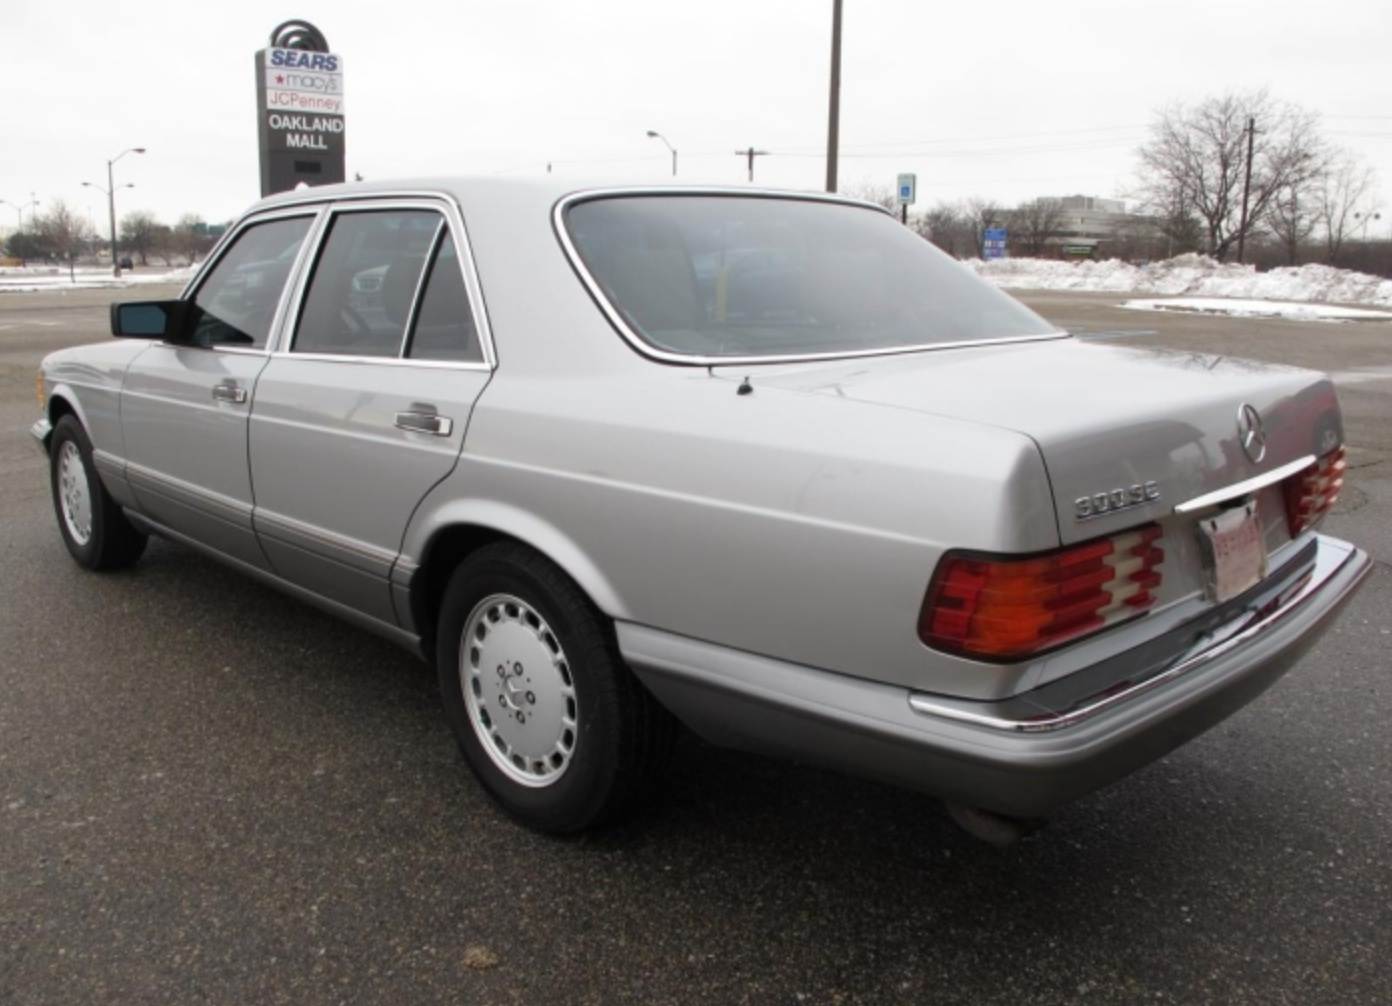 S Class Archives Page 15 Of 19 German Cars For Sale Blog Mercedes Cl W126 300sd 1983 Fuse Box Diagram A Very Nice Benz 300 4 Door Sedan This Is One Family Owned Vehicle And In Exceptional Condition With Only 88488 Actual Miles On It